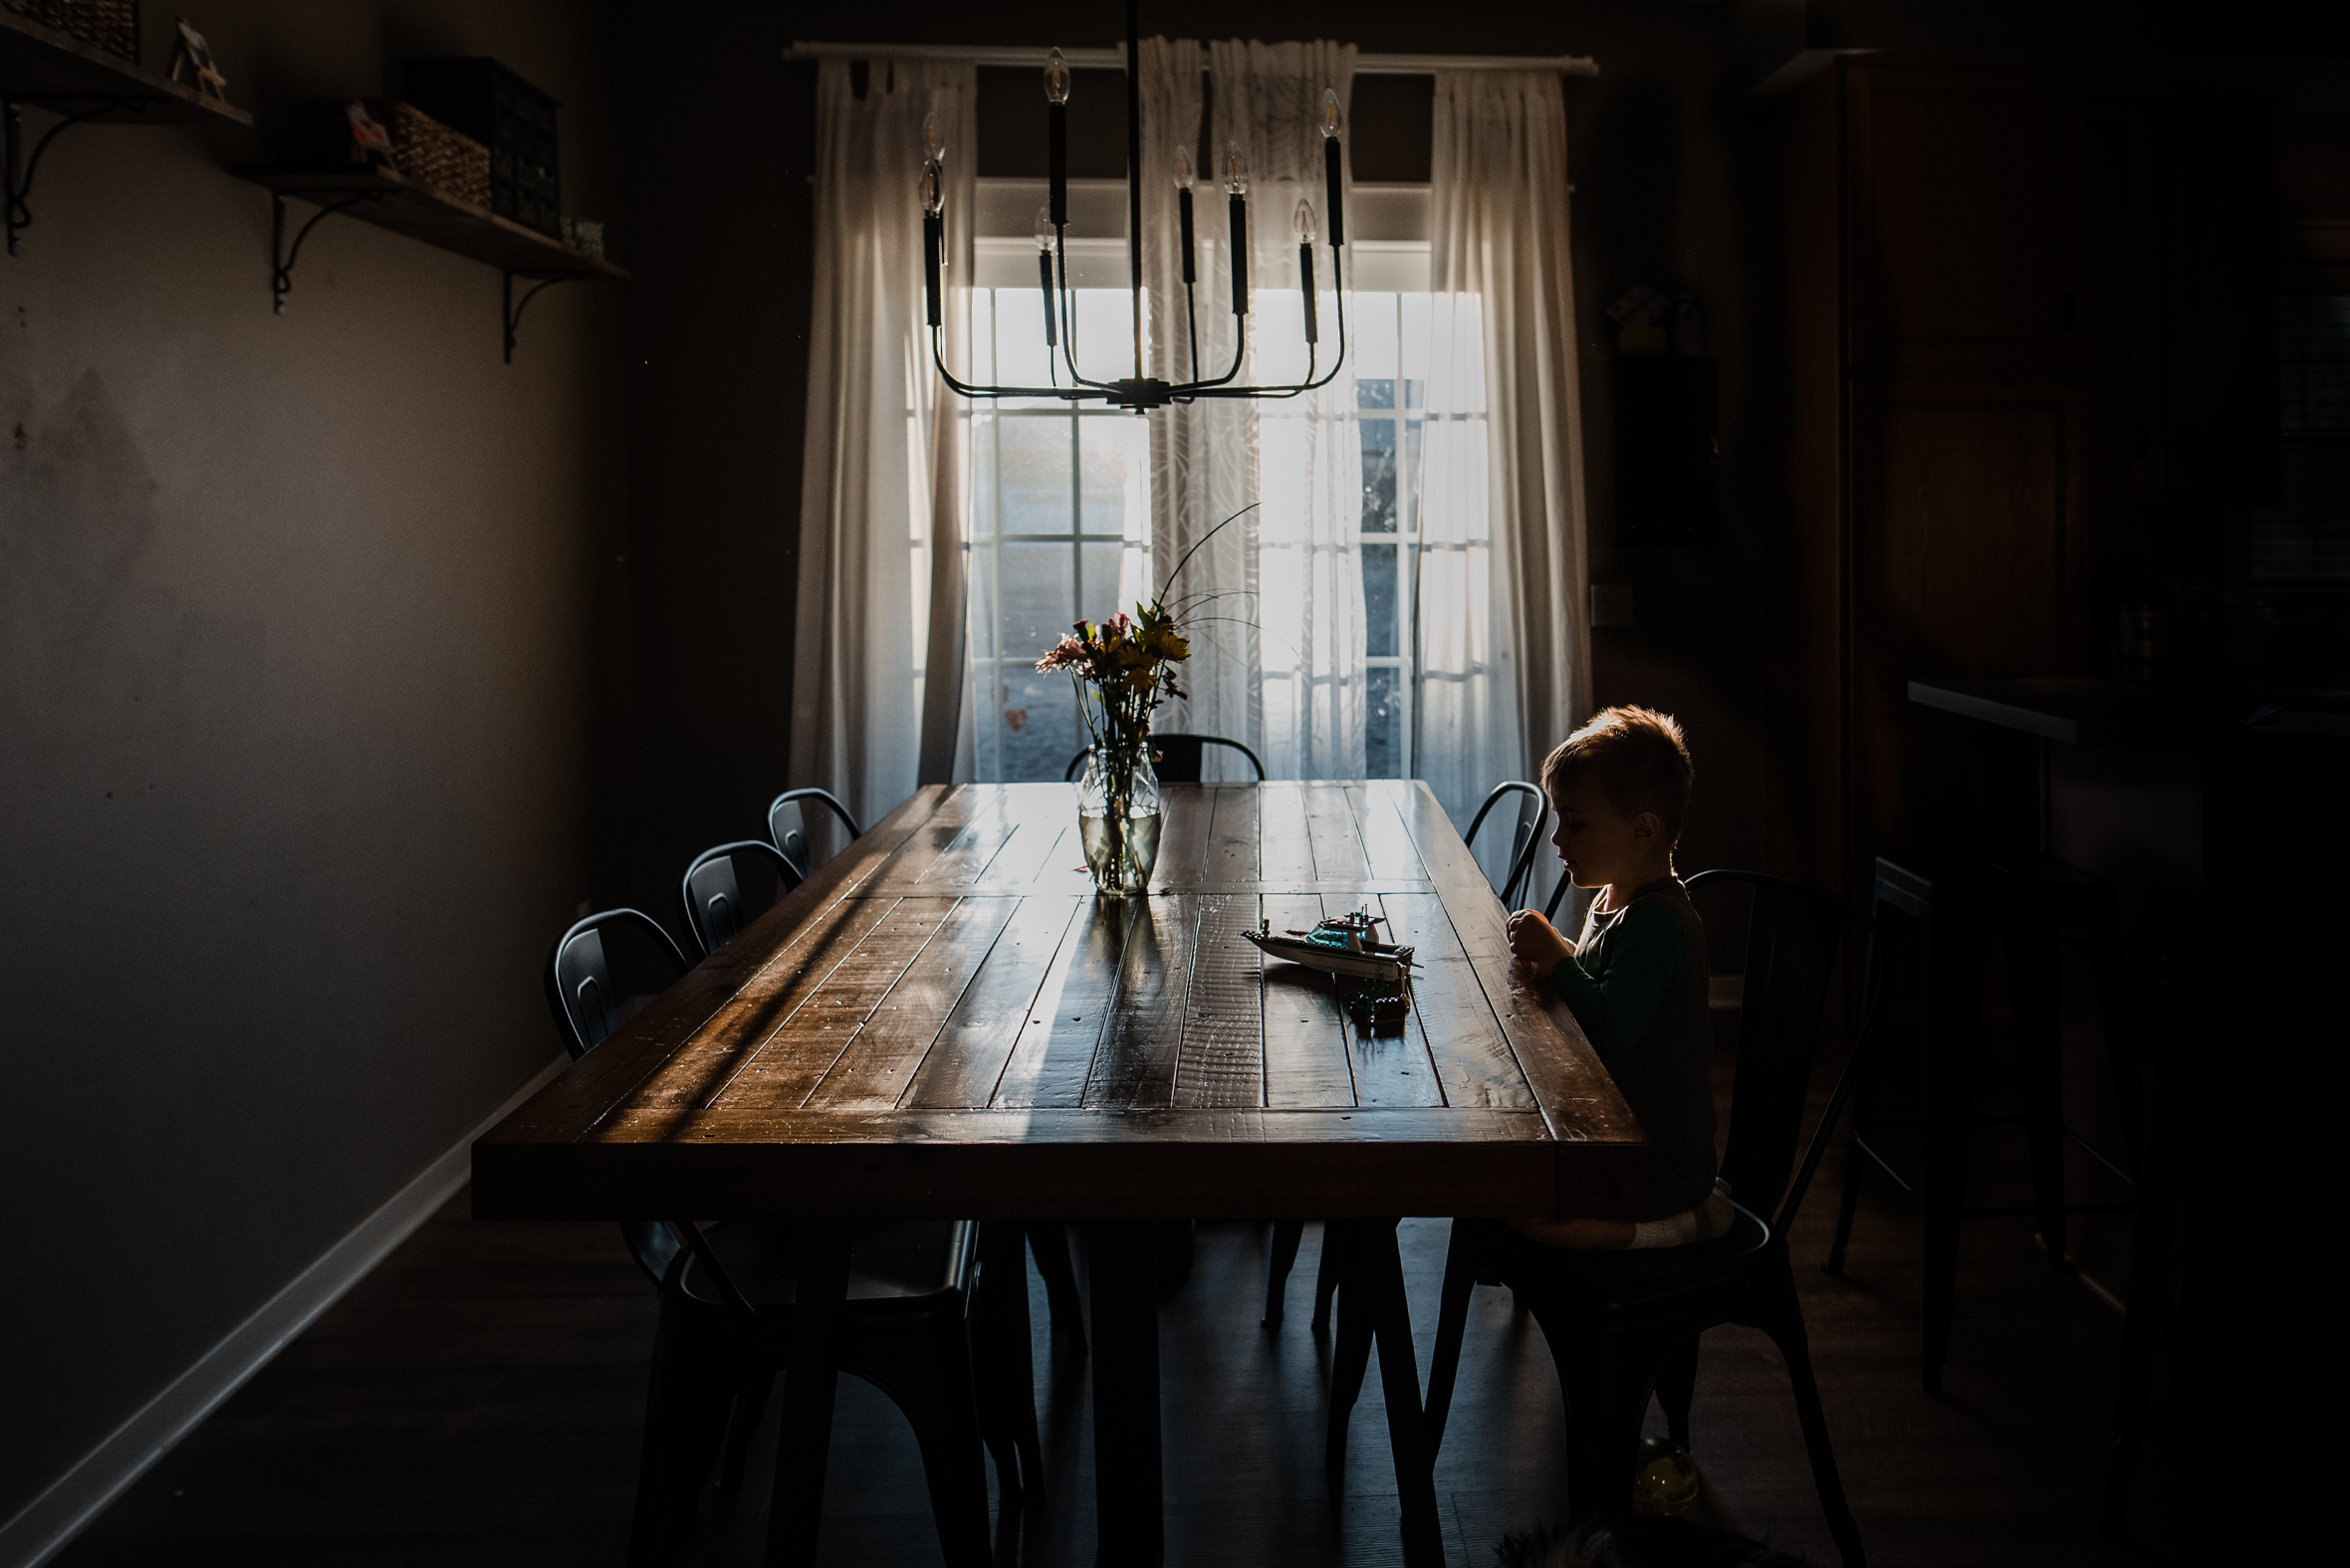 indoor natural light pictures, lifestyle kid pictures, boy sitting at table with natural light